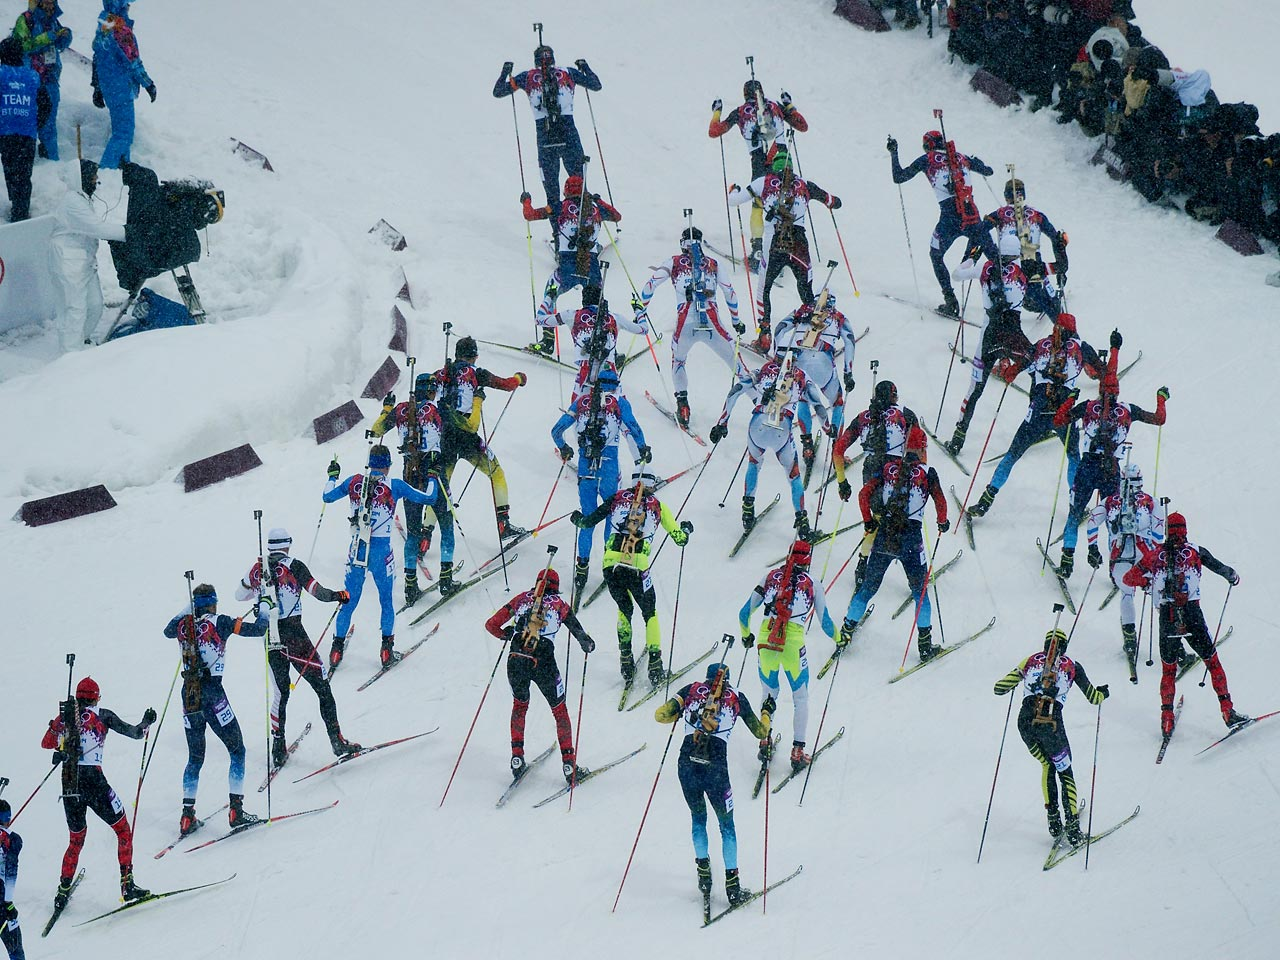 Biathlon competitors race through the course as a pack during the 15 kilometer mass start event.